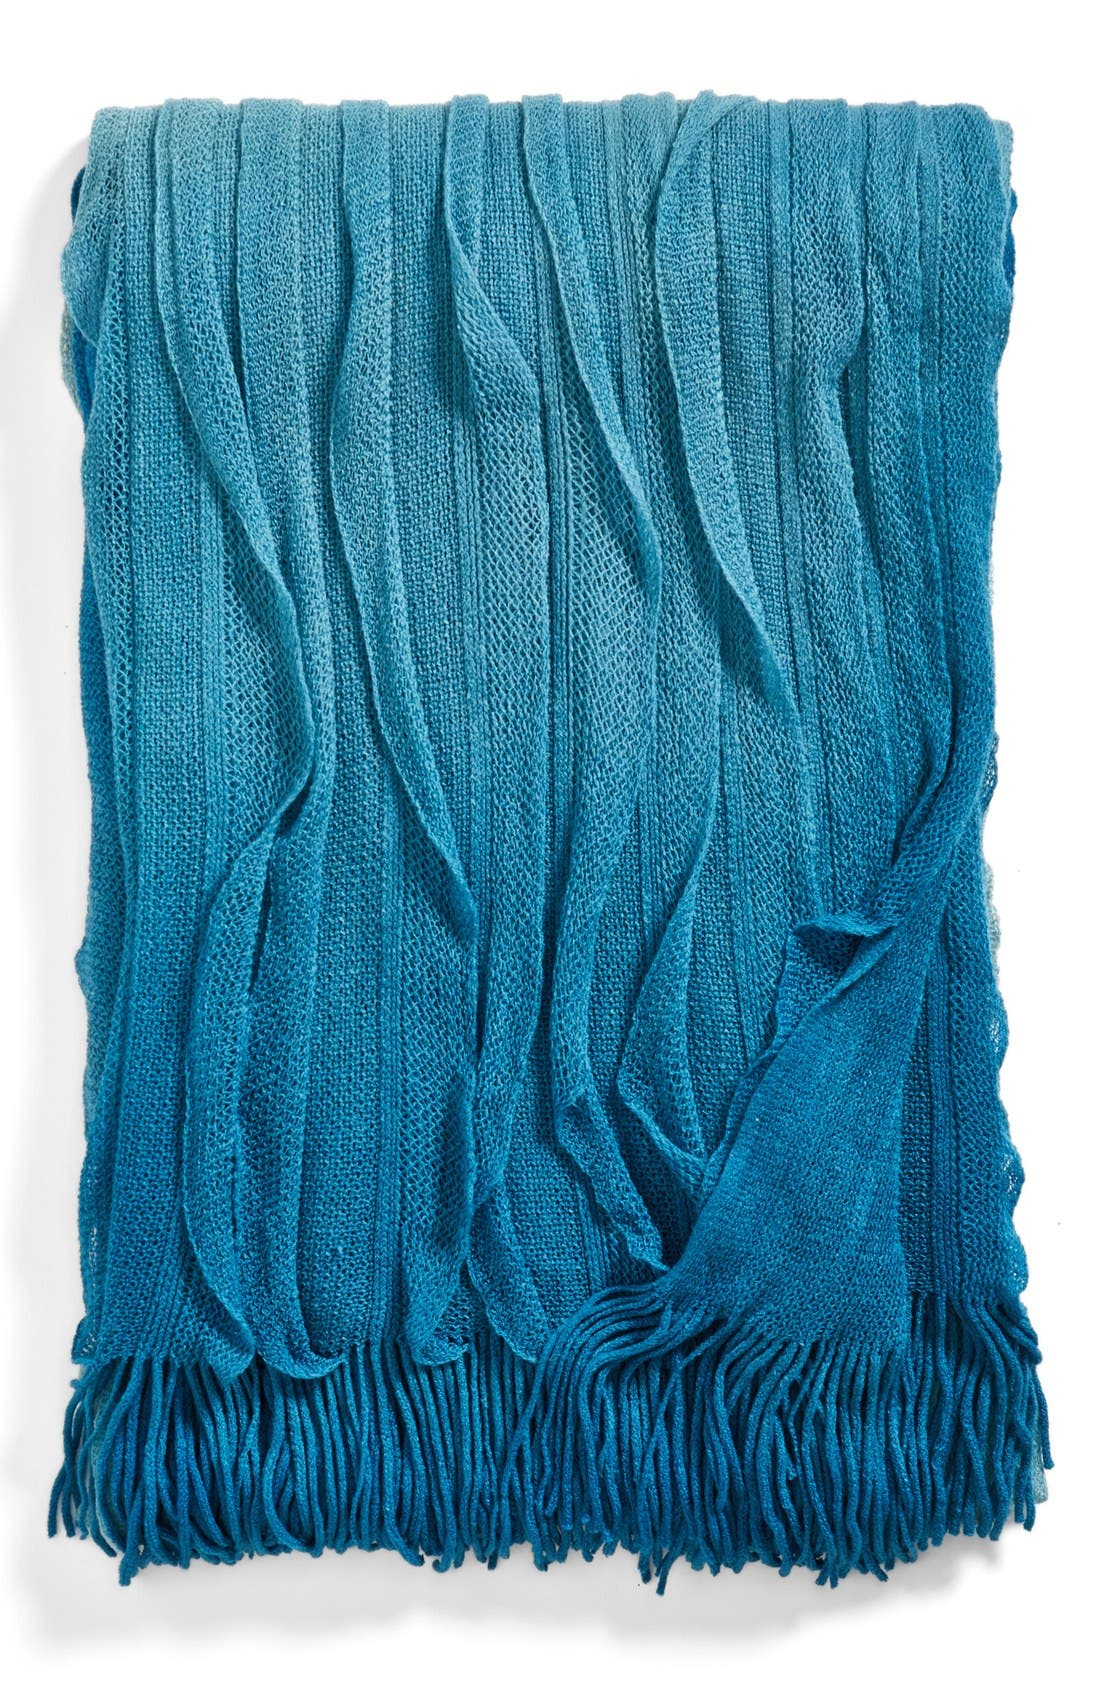 Main Image - Kennebunk Home Ombré Throw